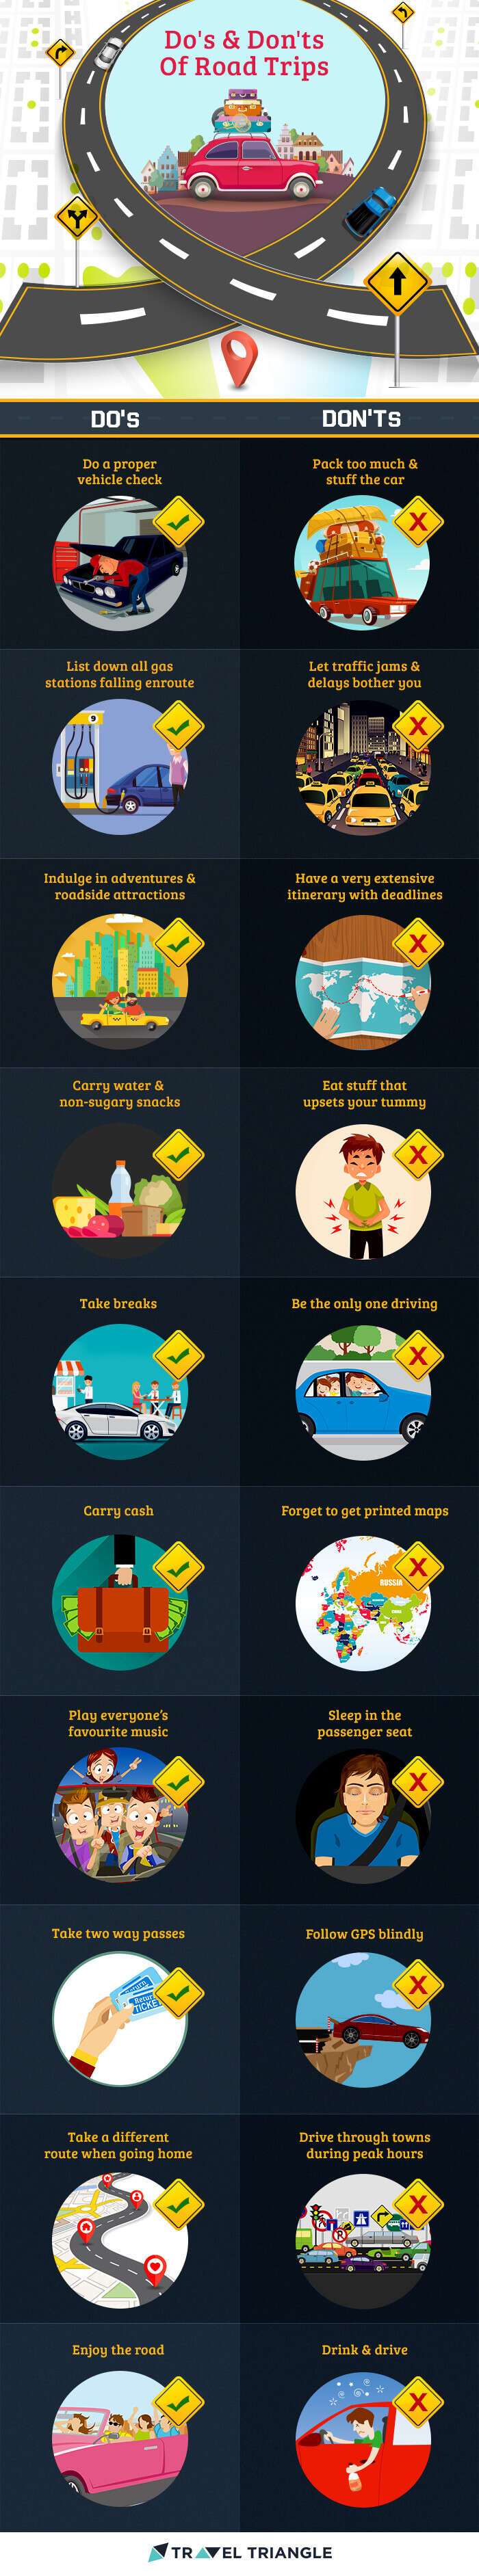 dos & donts of road trips infographic